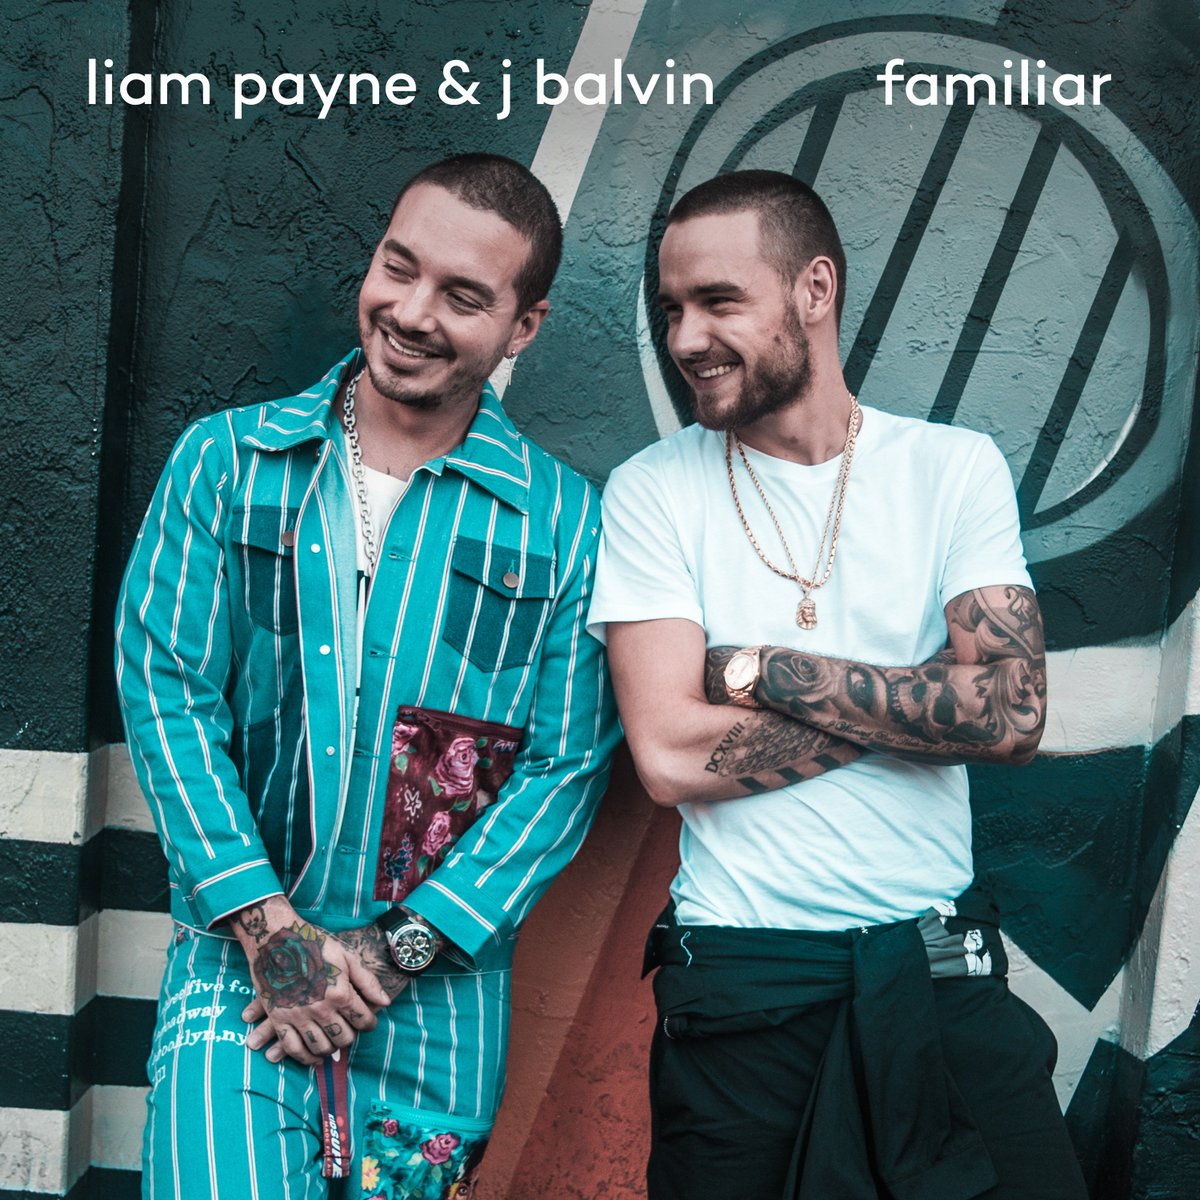 This is it! My next single #Familiar, featuring my boy @JBALVIN is out this Friday! Go pre-save it on @Spotify for a chance to be the FIRST person to hear it! https://t.co/NLxfiX0gLH